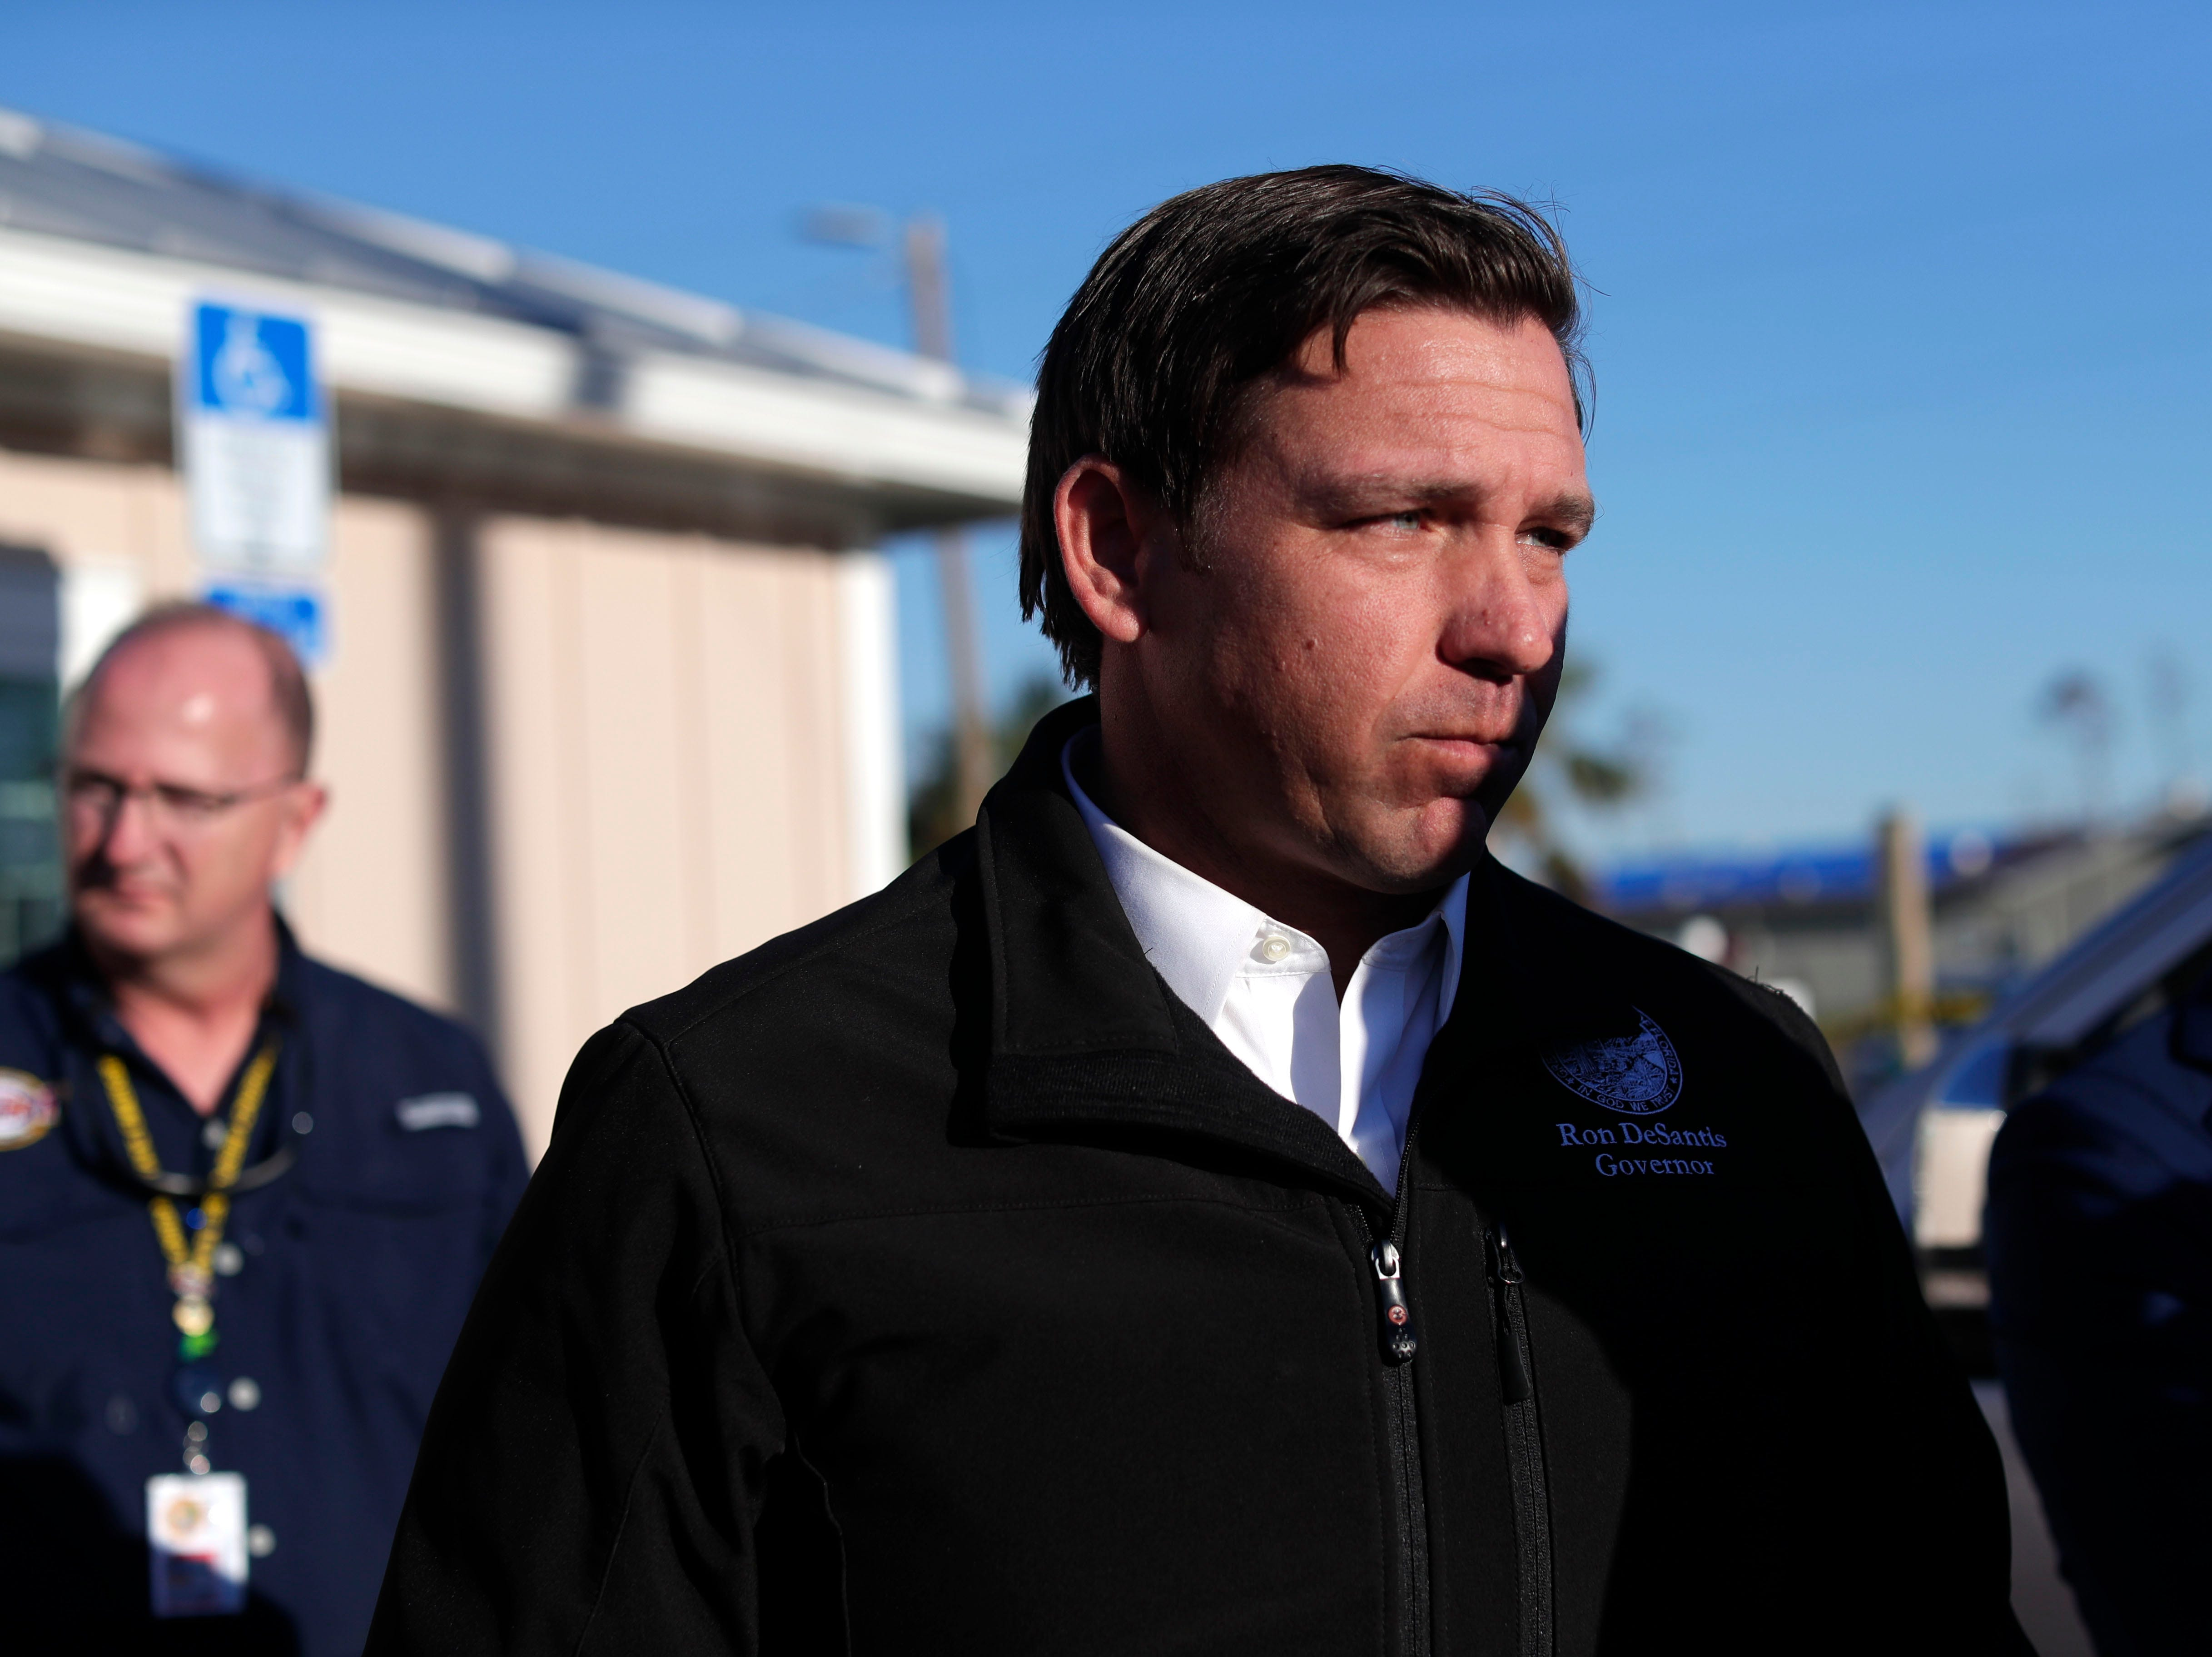 Gov. Ron DeSantis speaks with the media about what he saw when touring Mexico Beach, Jan. 9, 2019. Hurricane Michael left the panhandle in a total disarray on Oct. 10, 2018.